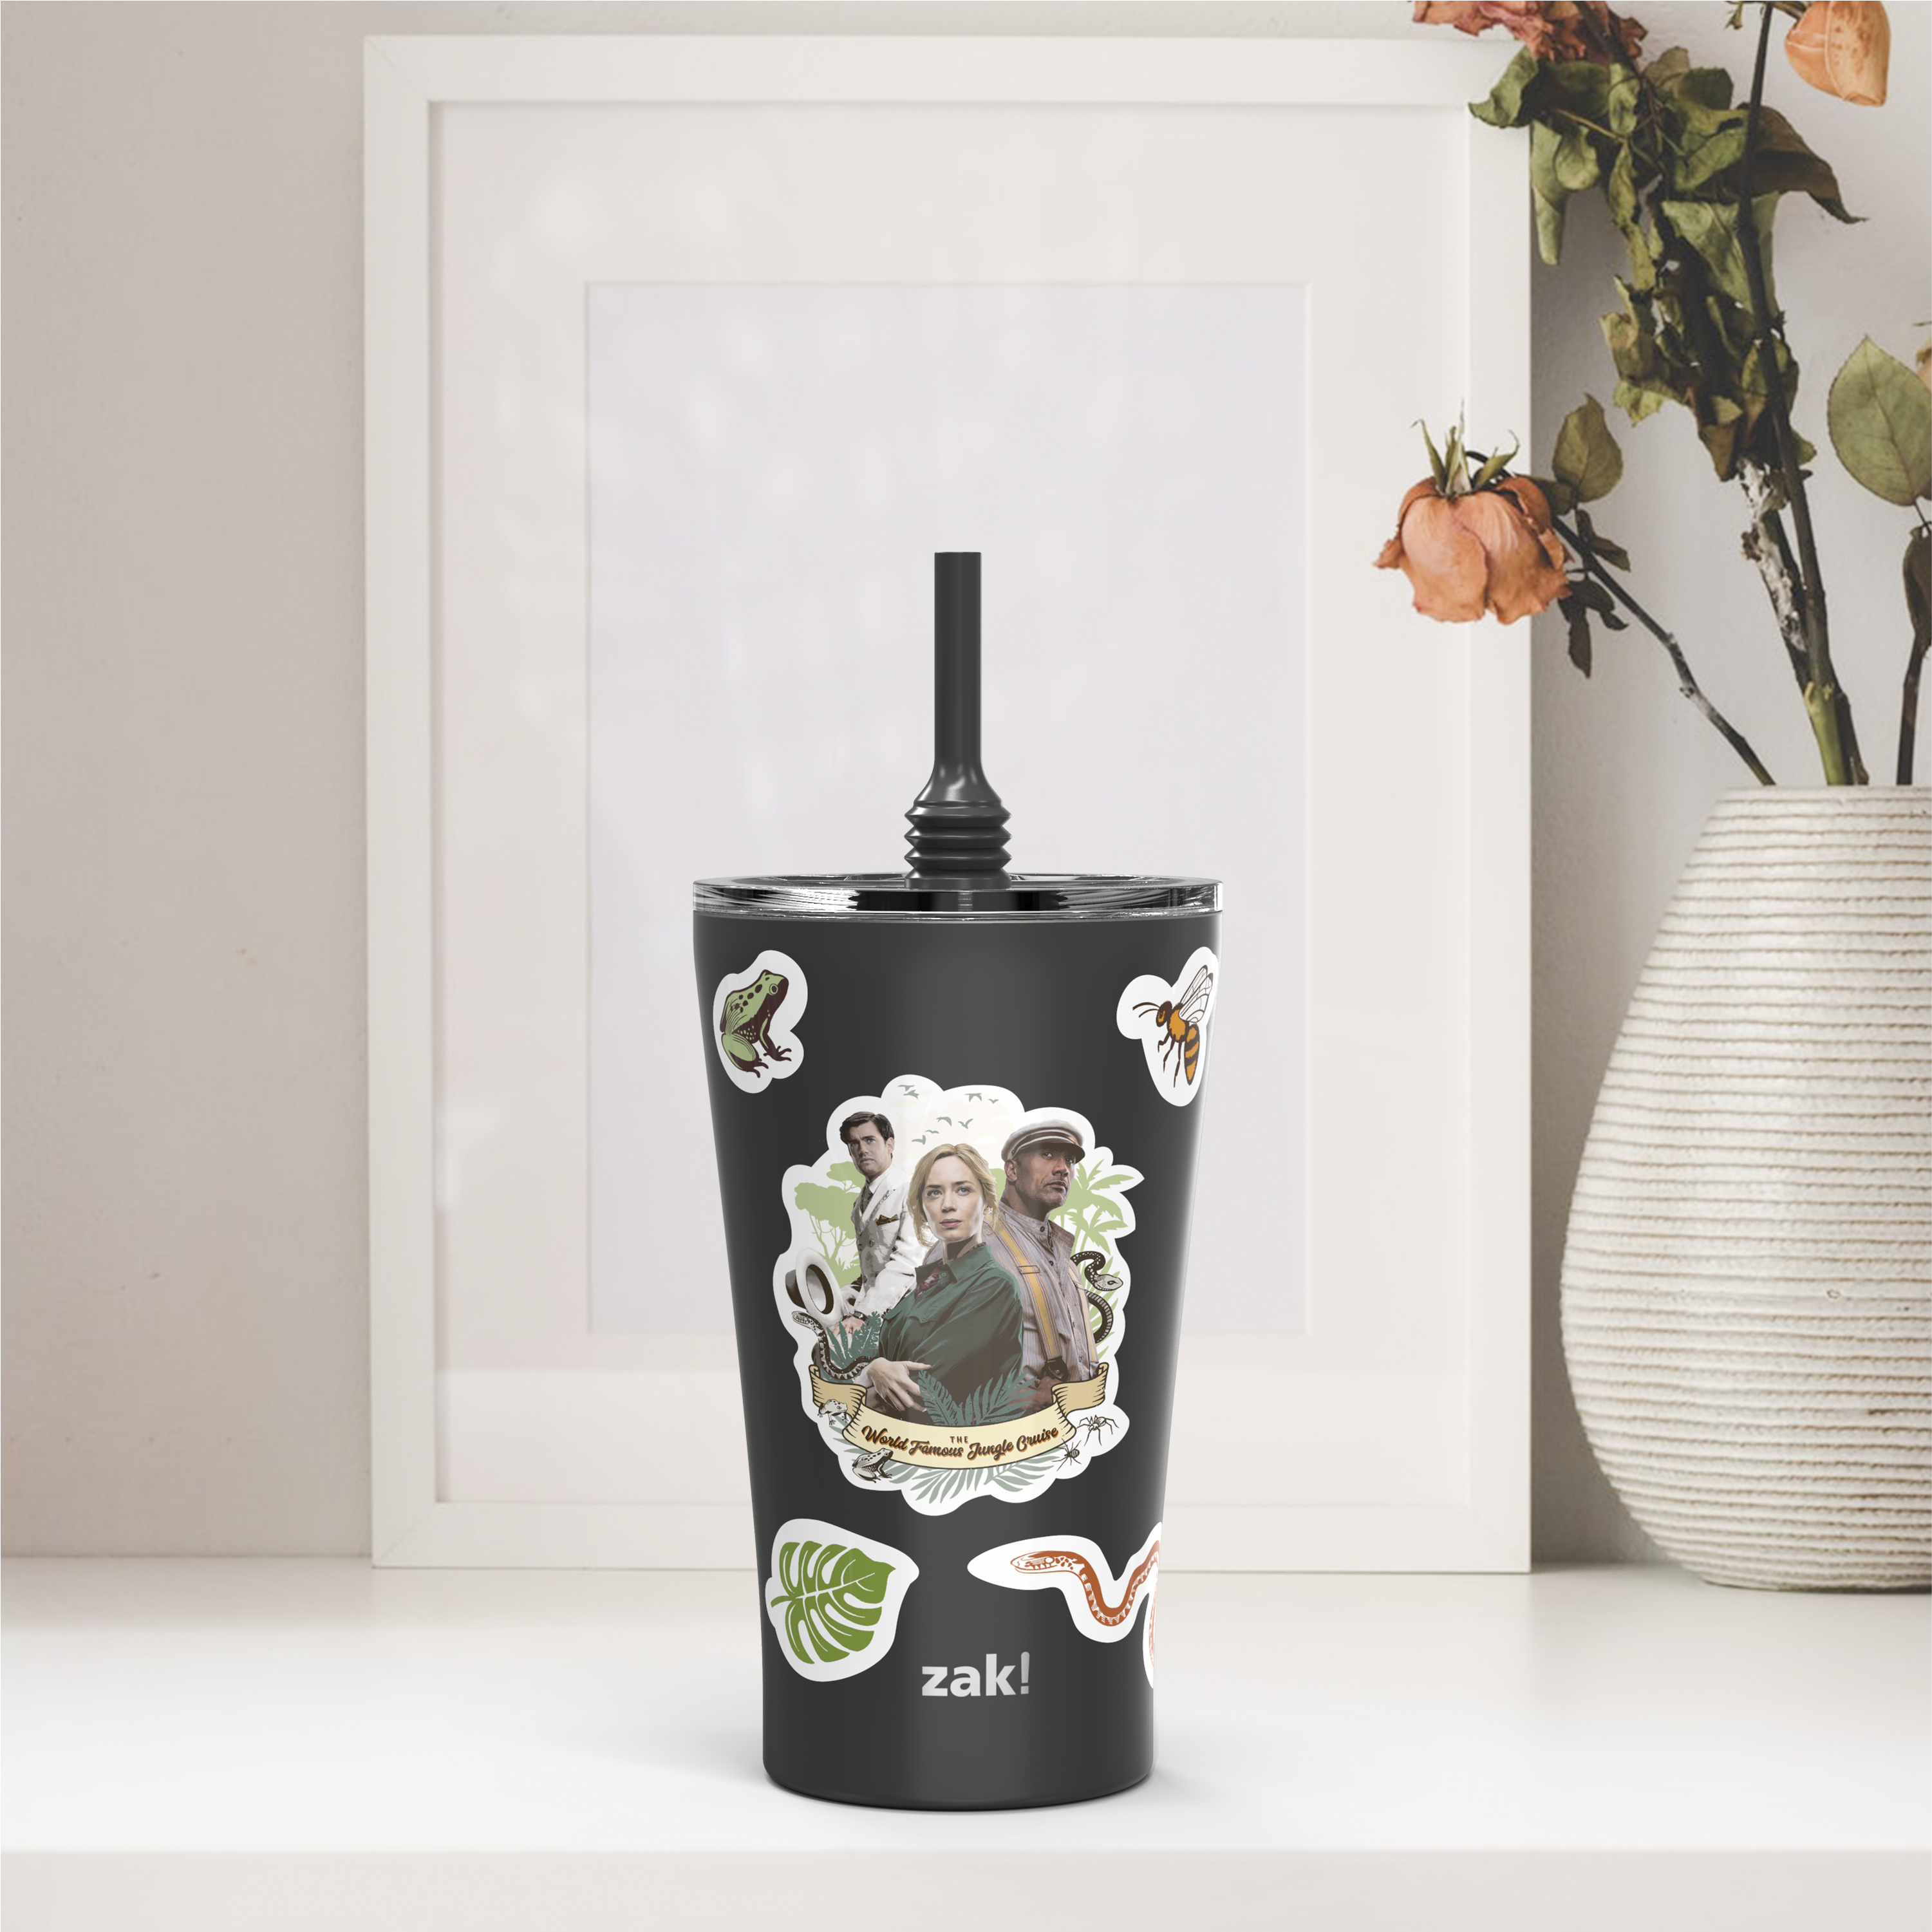 Jungle Cruise 20 ounce Insulated Tumbler with Stickers, Frank and Lily slideshow image 6